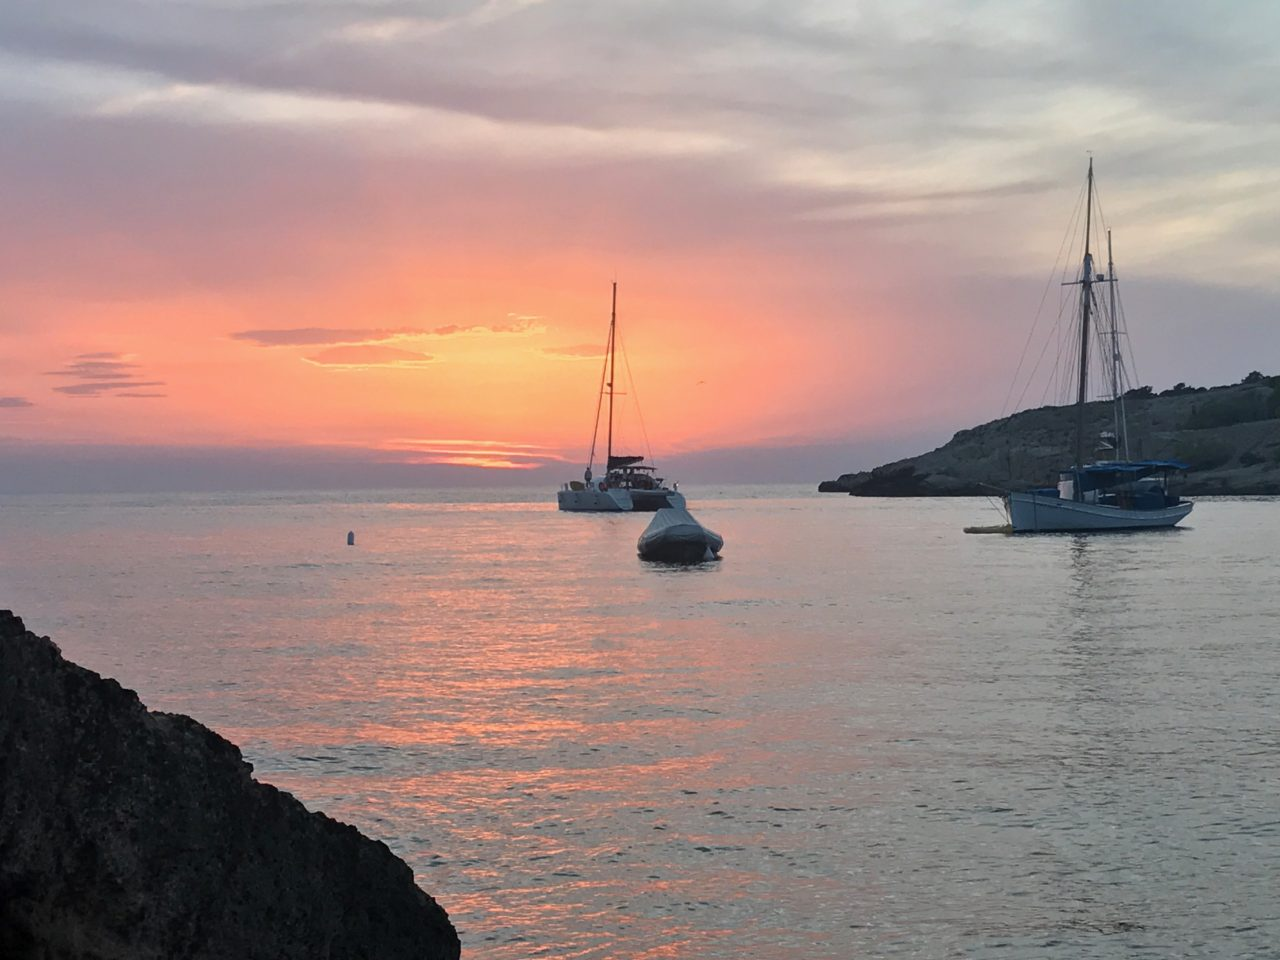 Sunset In Ibiza With Sail Boats In A Cove